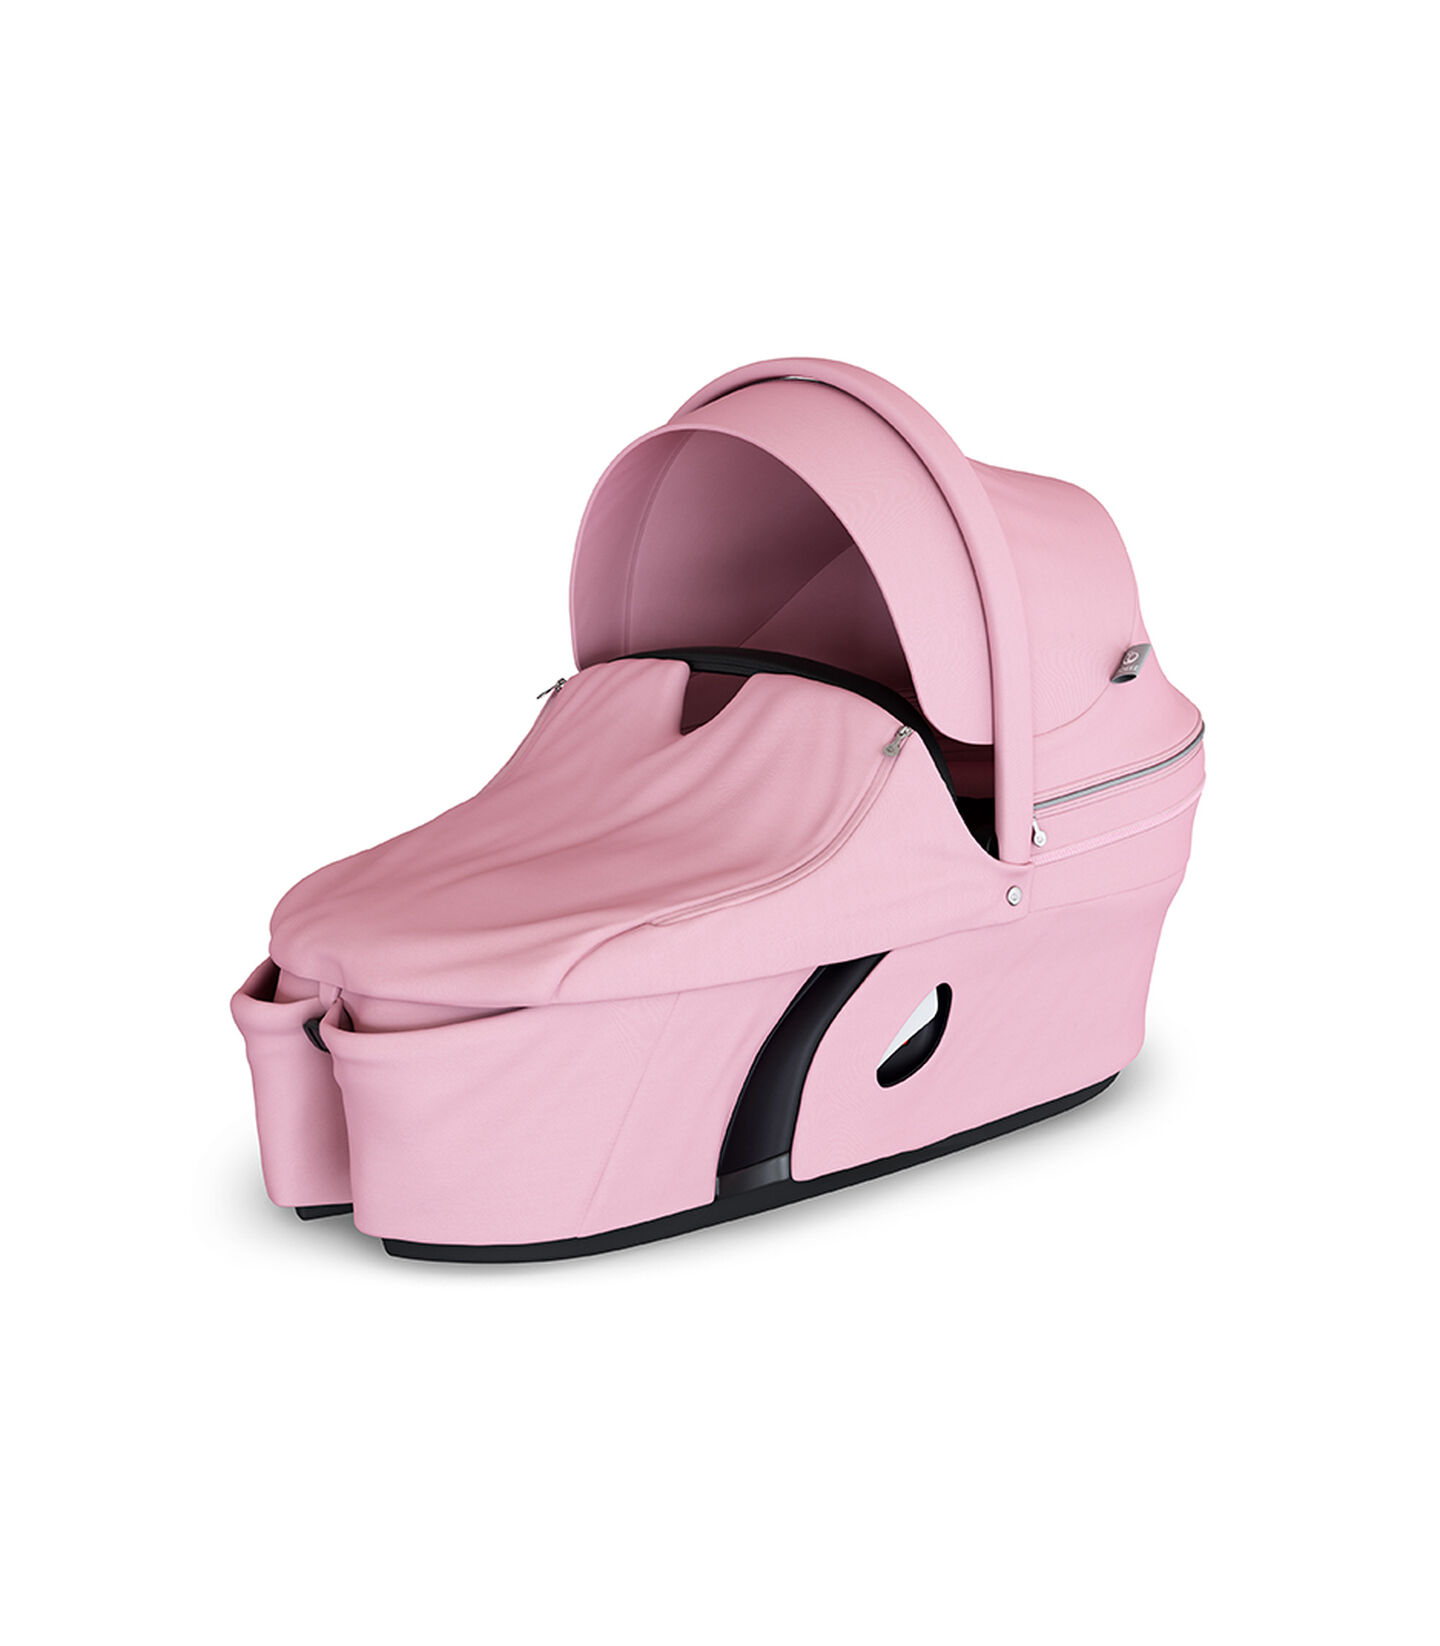 Stokke® Xplory® Carry Cot Complete Lotus Pink, Lotus Pink, mainview view 2